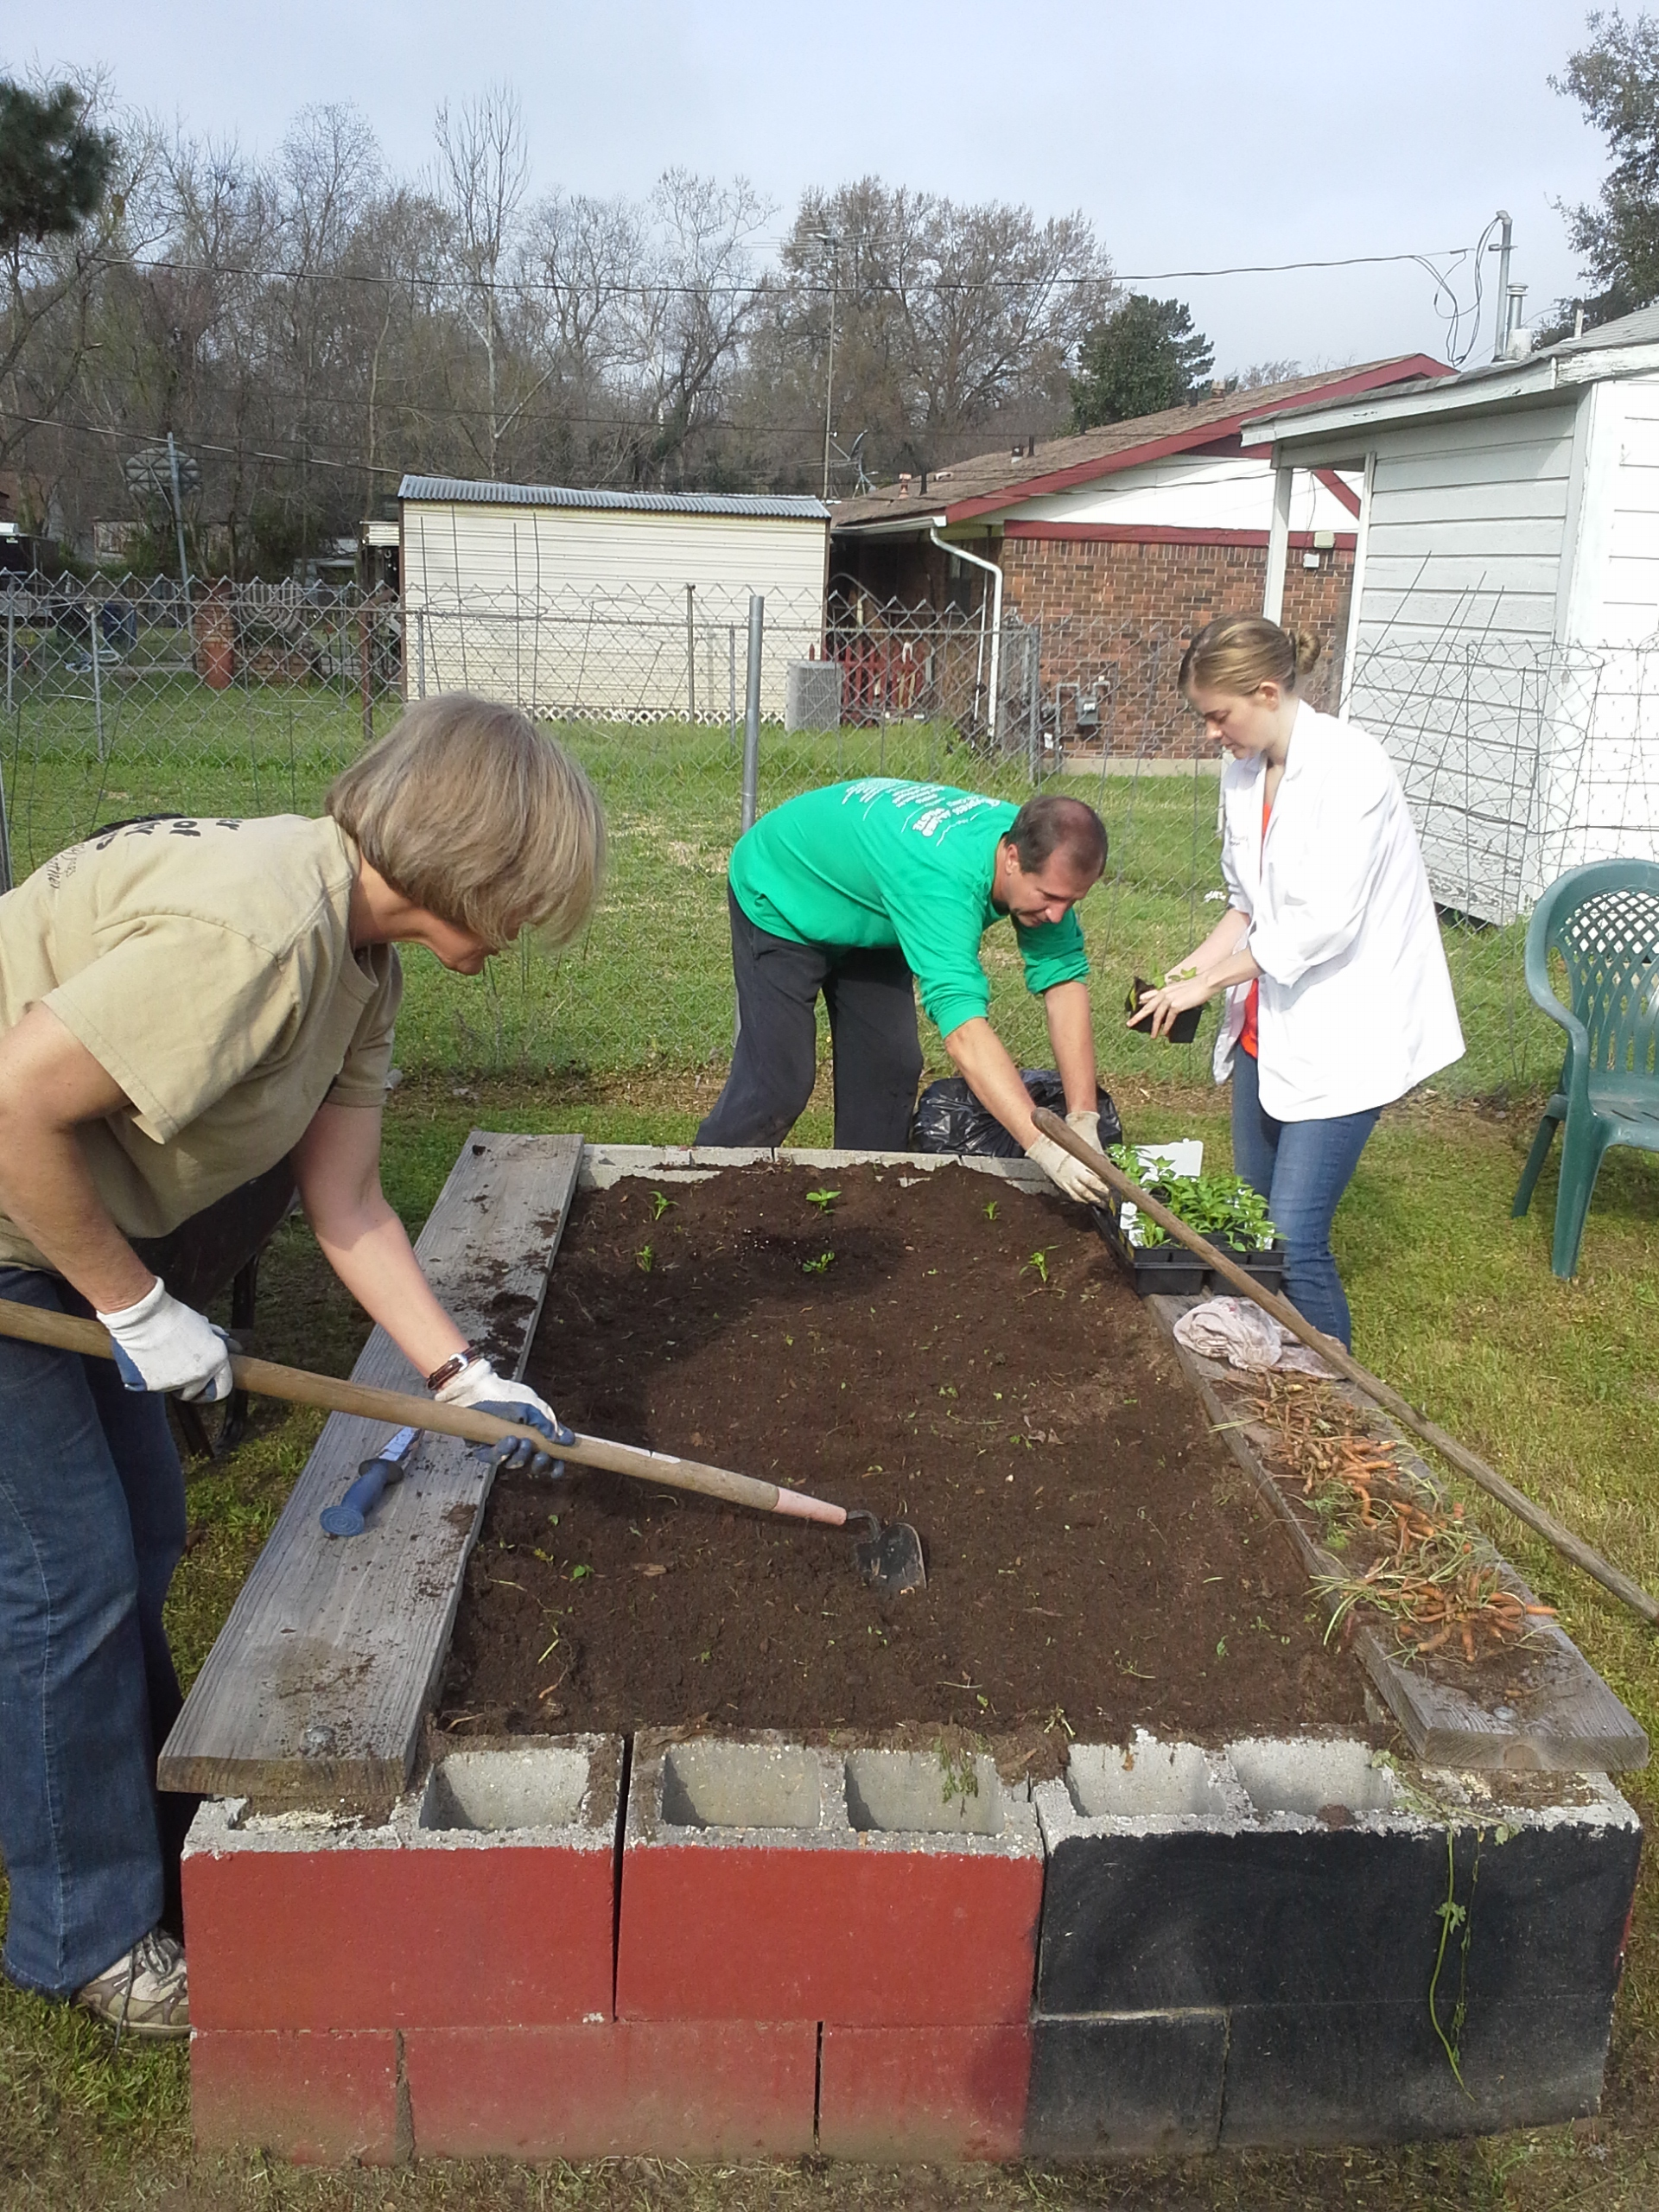 Community gardens bring nutritious food options to urban areas